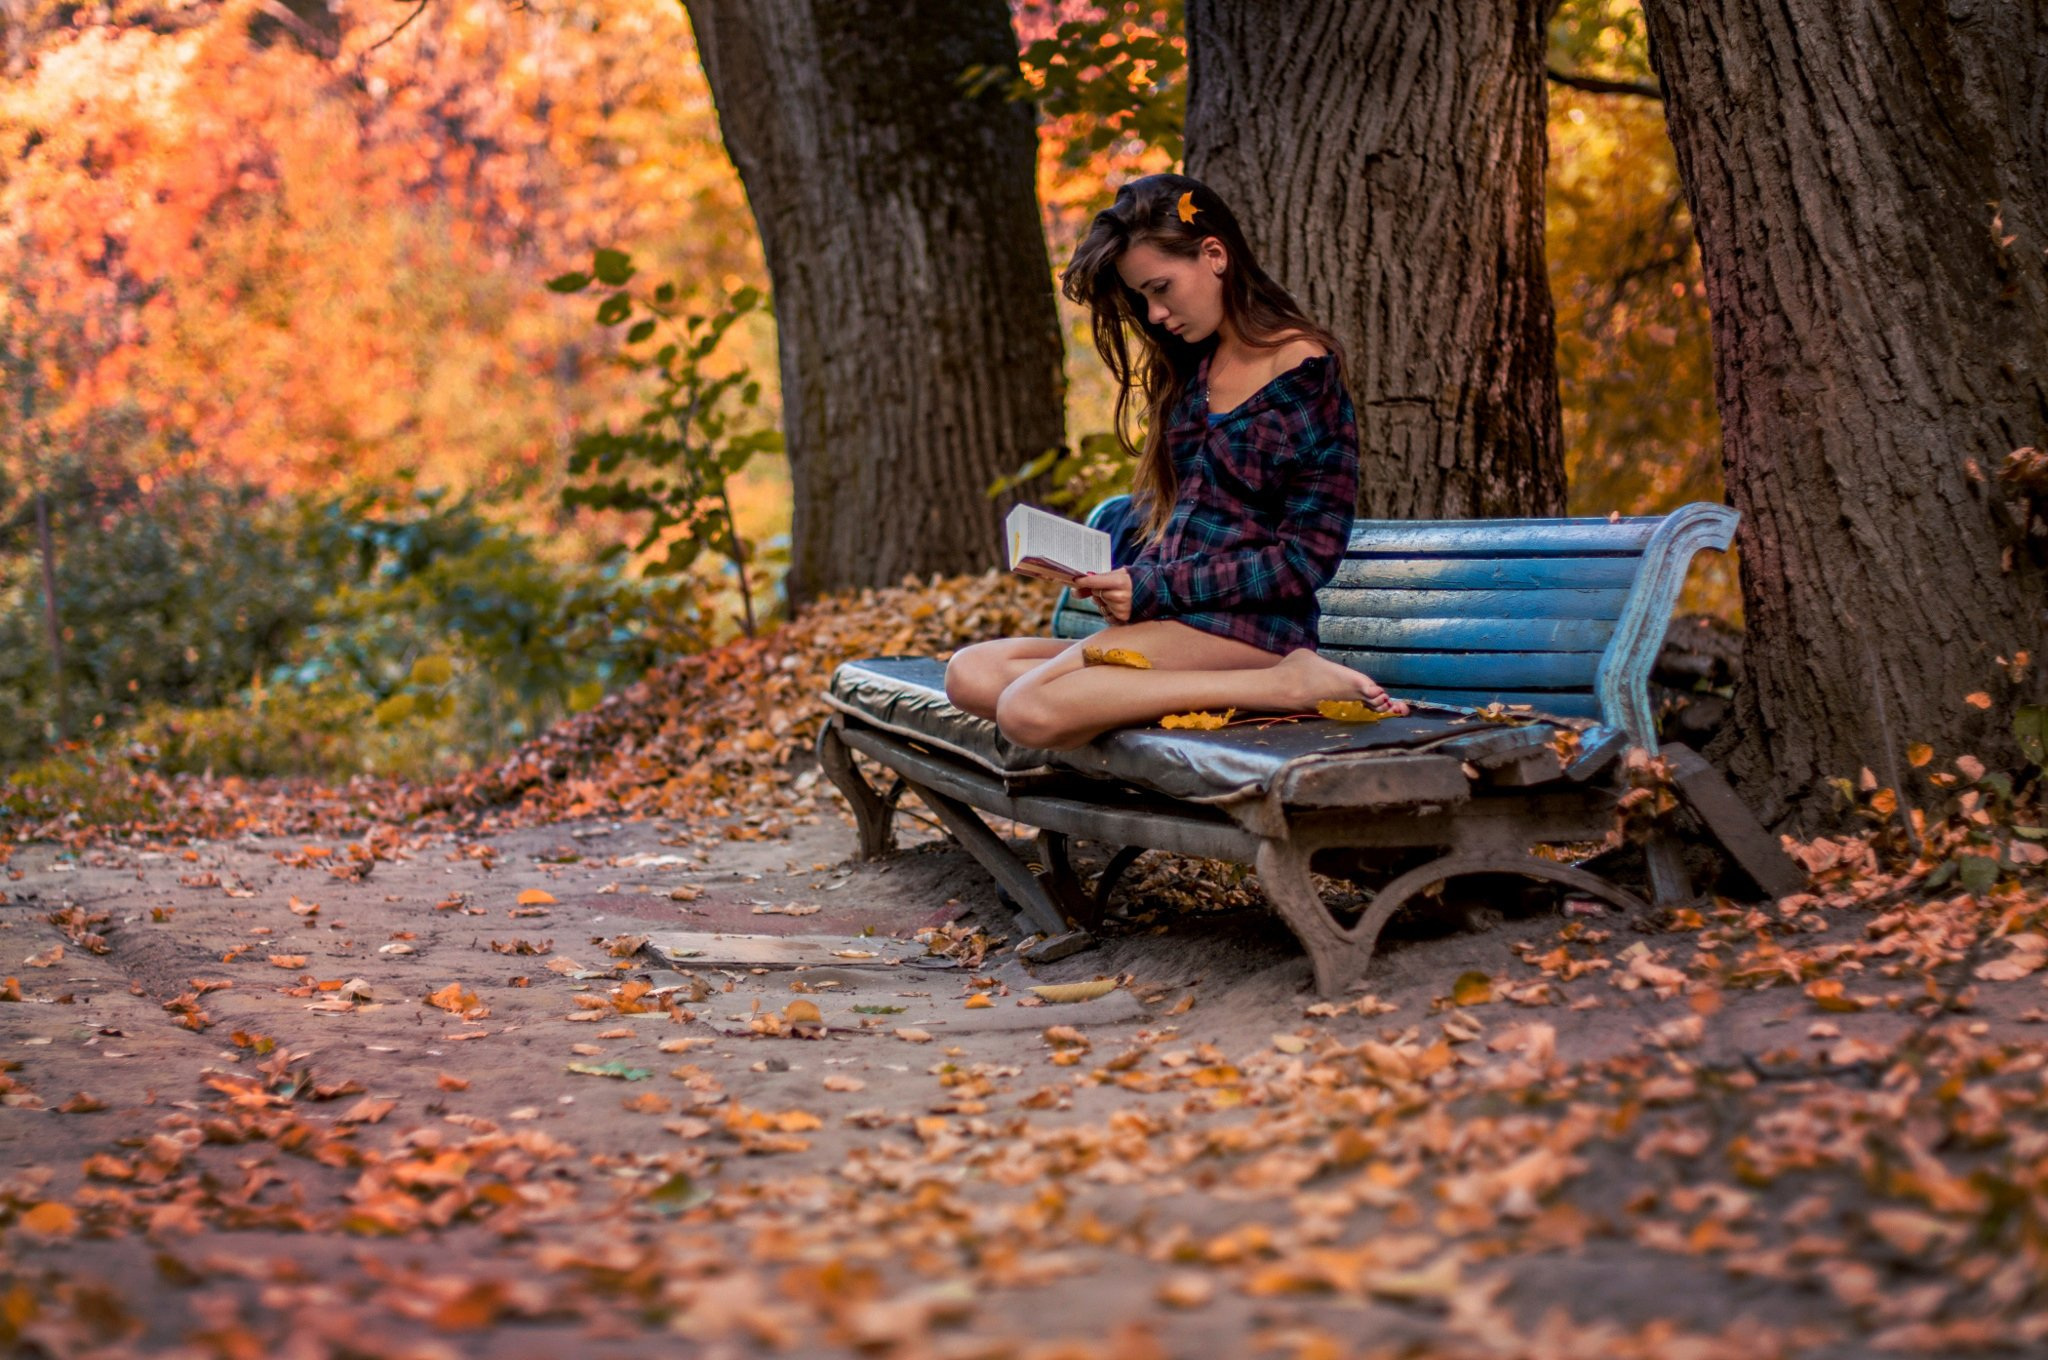 Girl Reading Book Wallpapers Autumn Park Girl Bench Book Wallpaper 2048x1360 470084